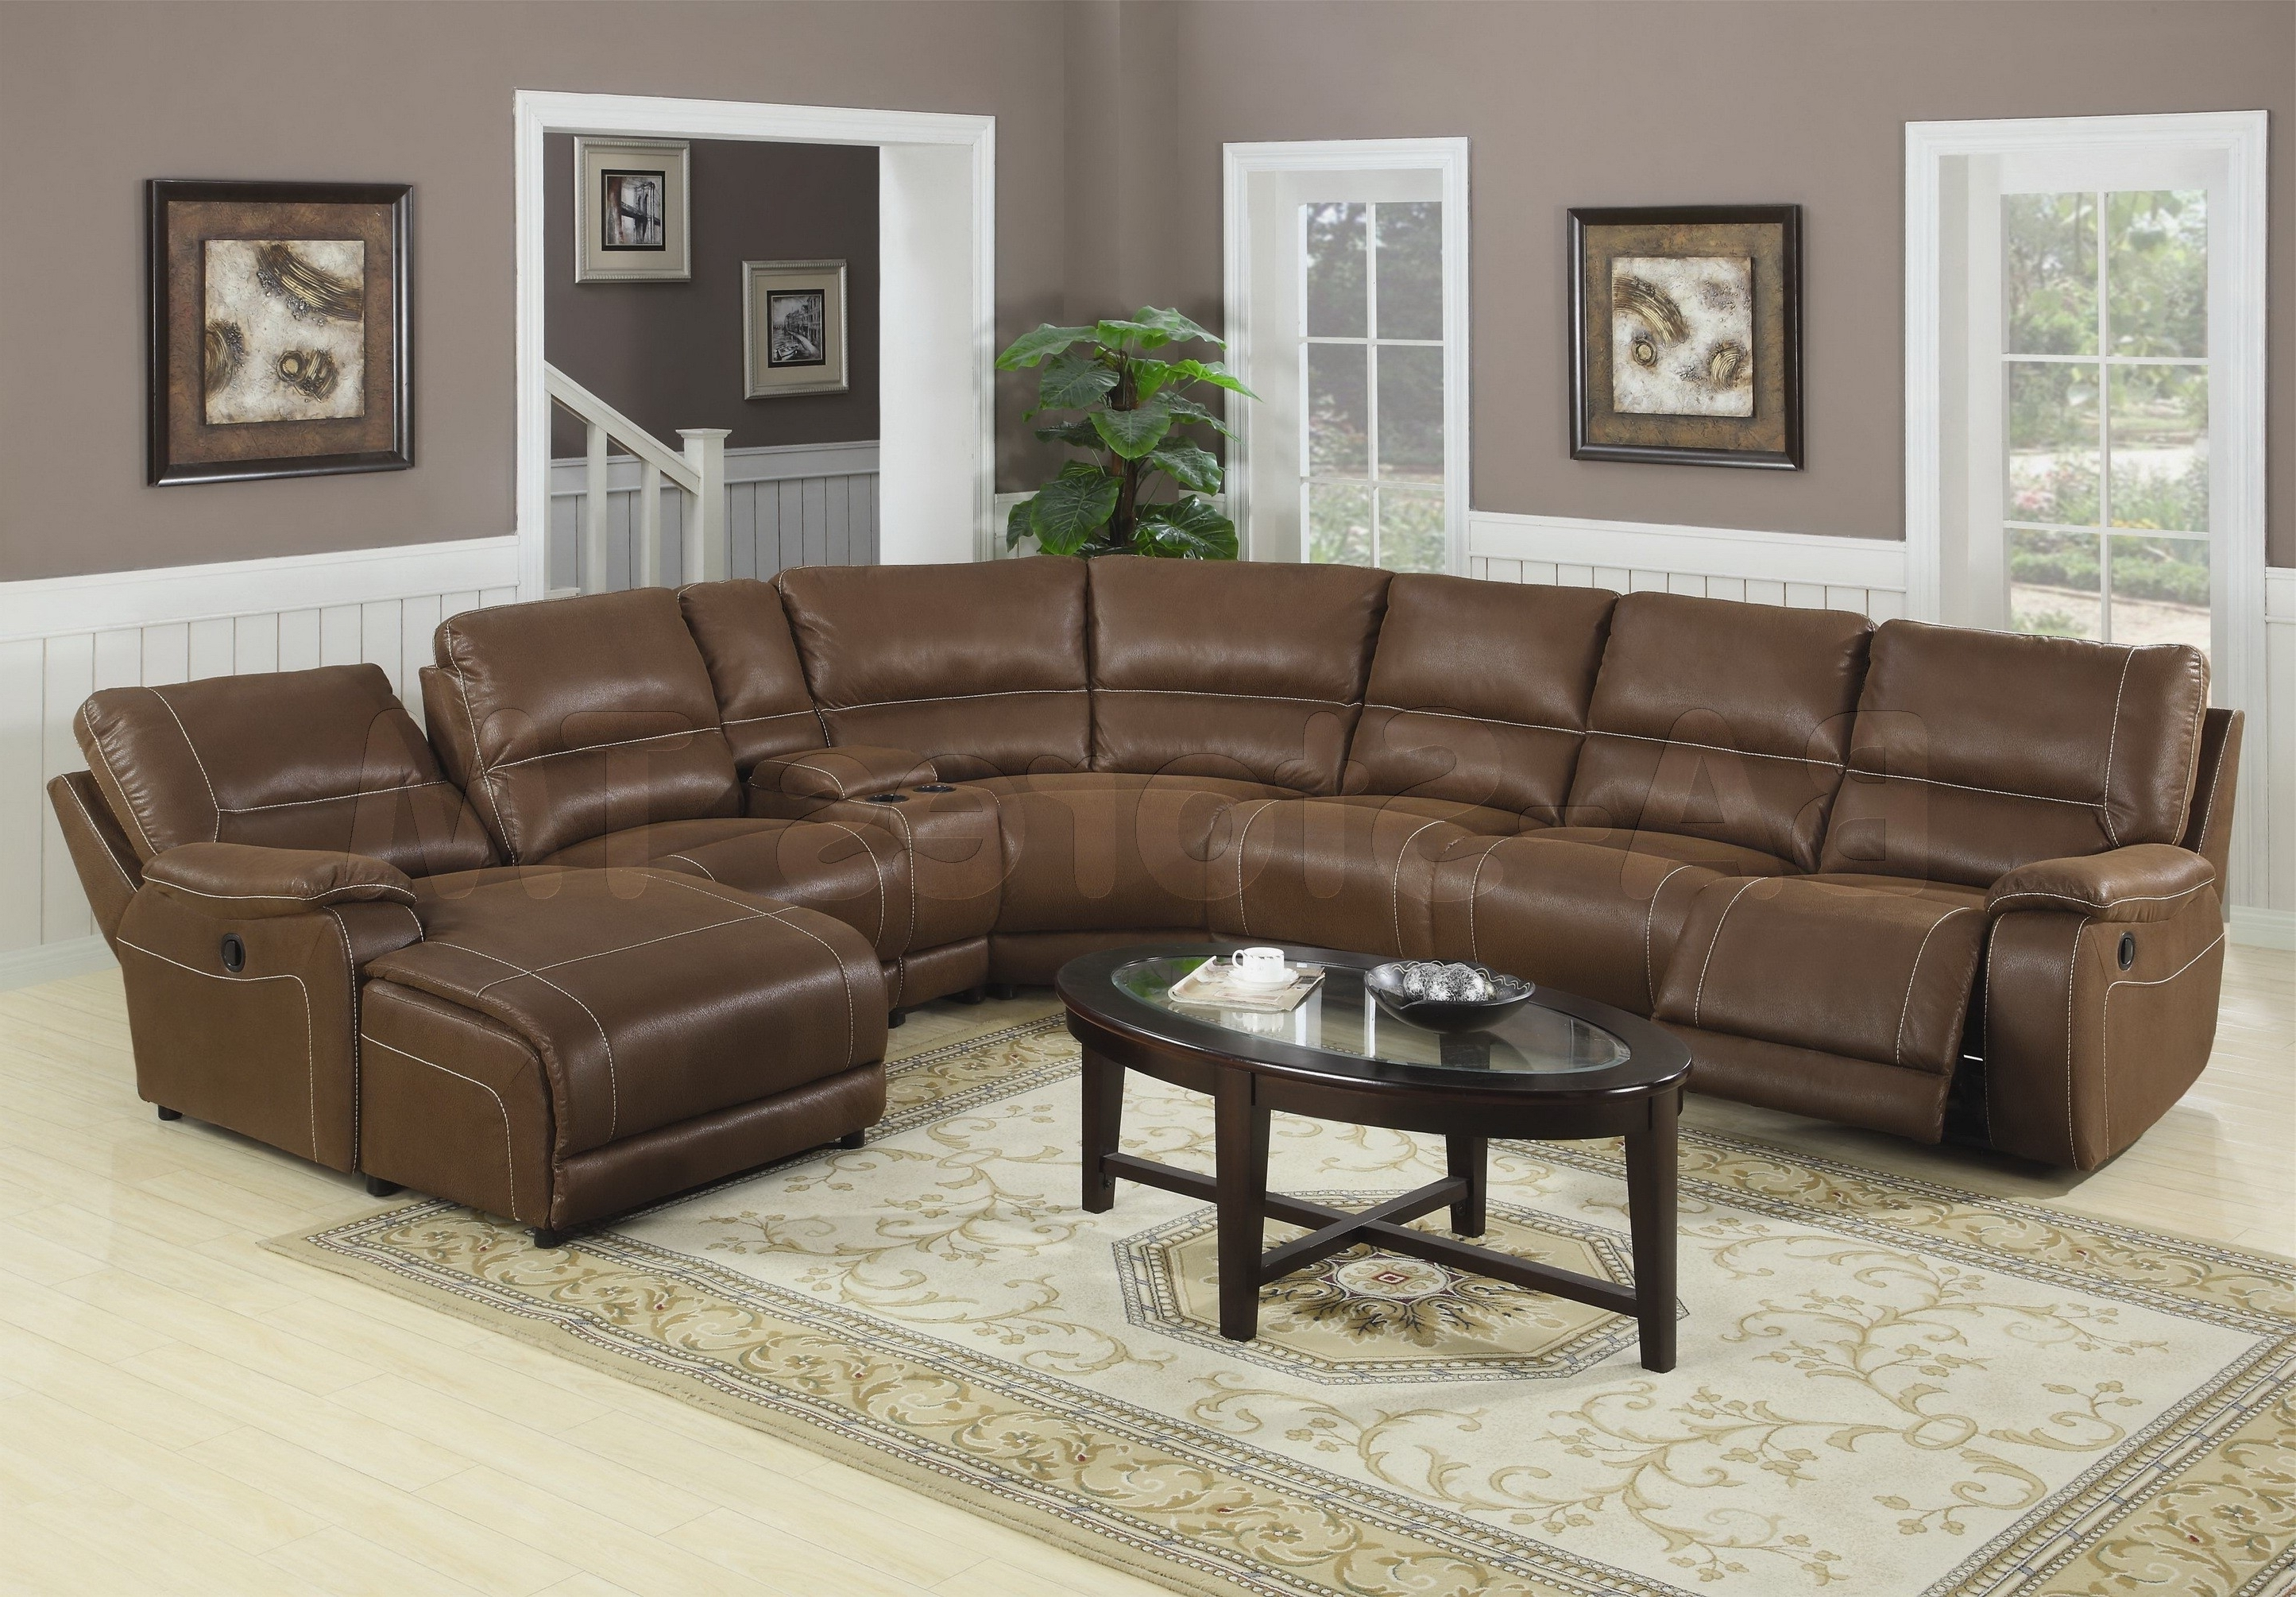 Best And Newest Extra Large Sectional Sofas Throughout Extra Large Sectional Sofas With Chaise (View 12 of 15)